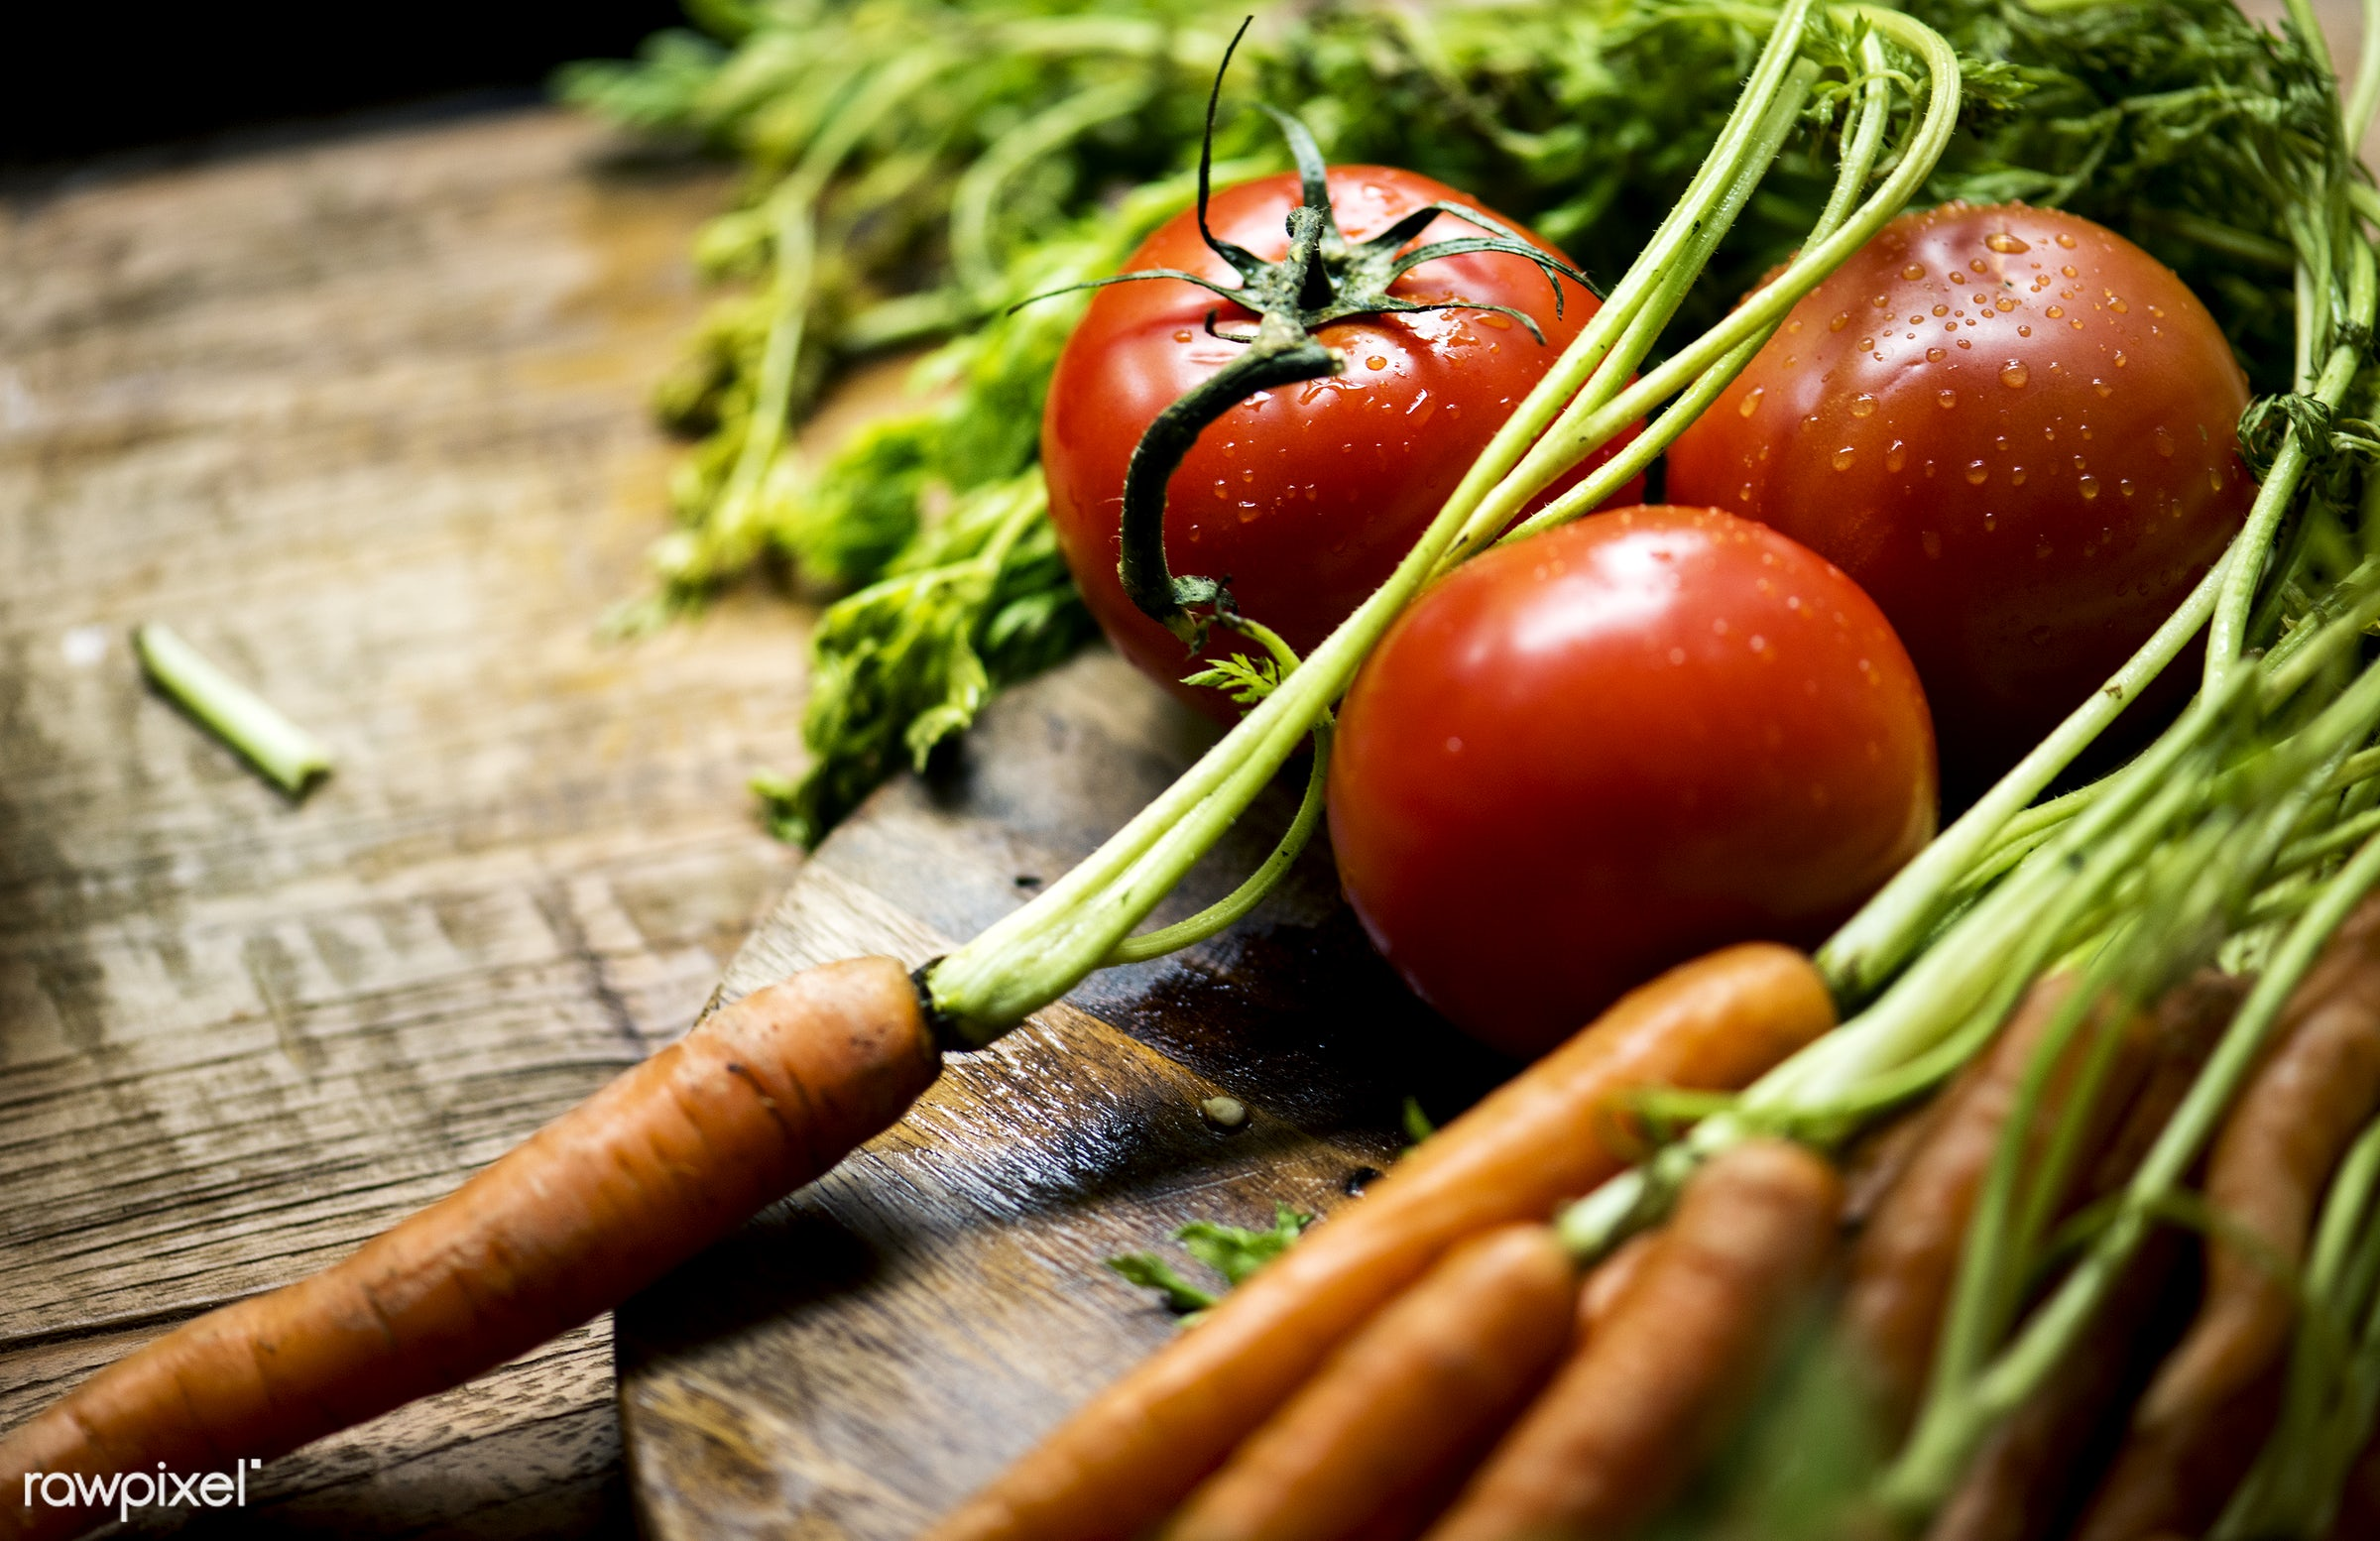 Fresh organic carrots - superfood, nobody, tomato, green, nutrients, real, organic, nature, fresh, carrots, vegetable,...